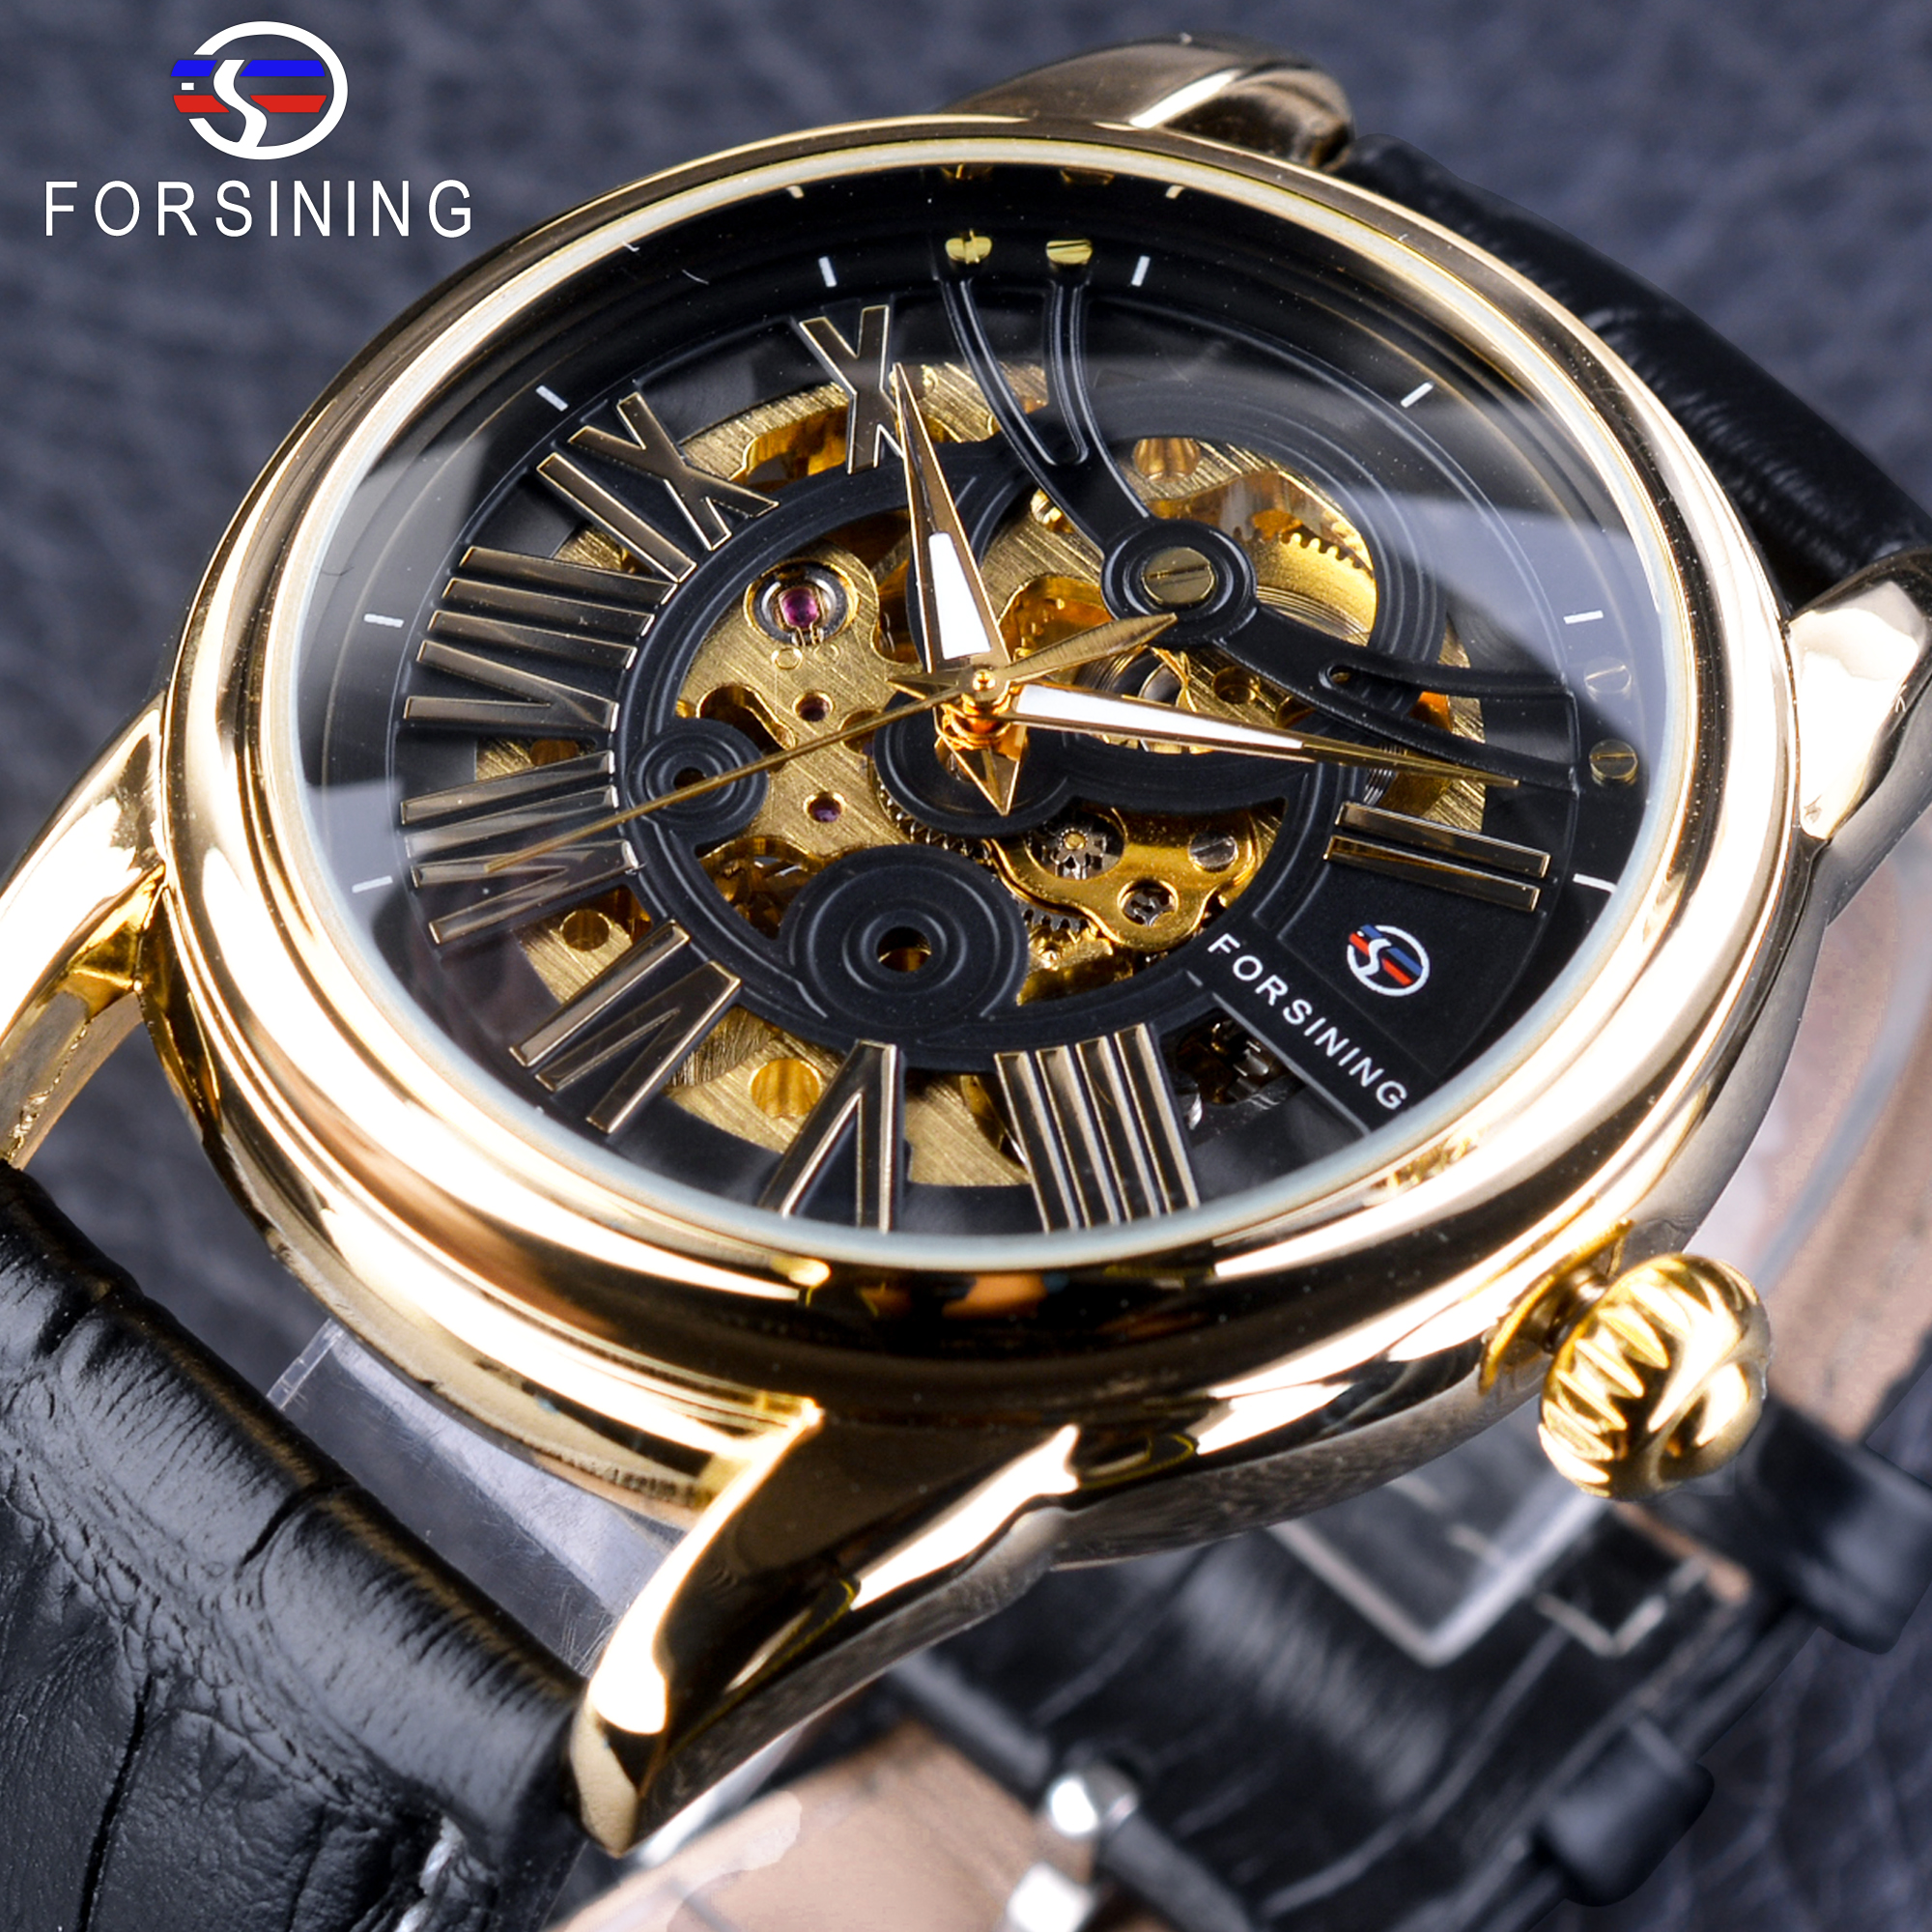 Forsining Official Exclusive Sale Black Genuine Leather Fashion Roman Number Design Men's Automatic Skeleton Watches Golden Dial tt tf ths 02b hybrid style black ver convoy asia exclusive